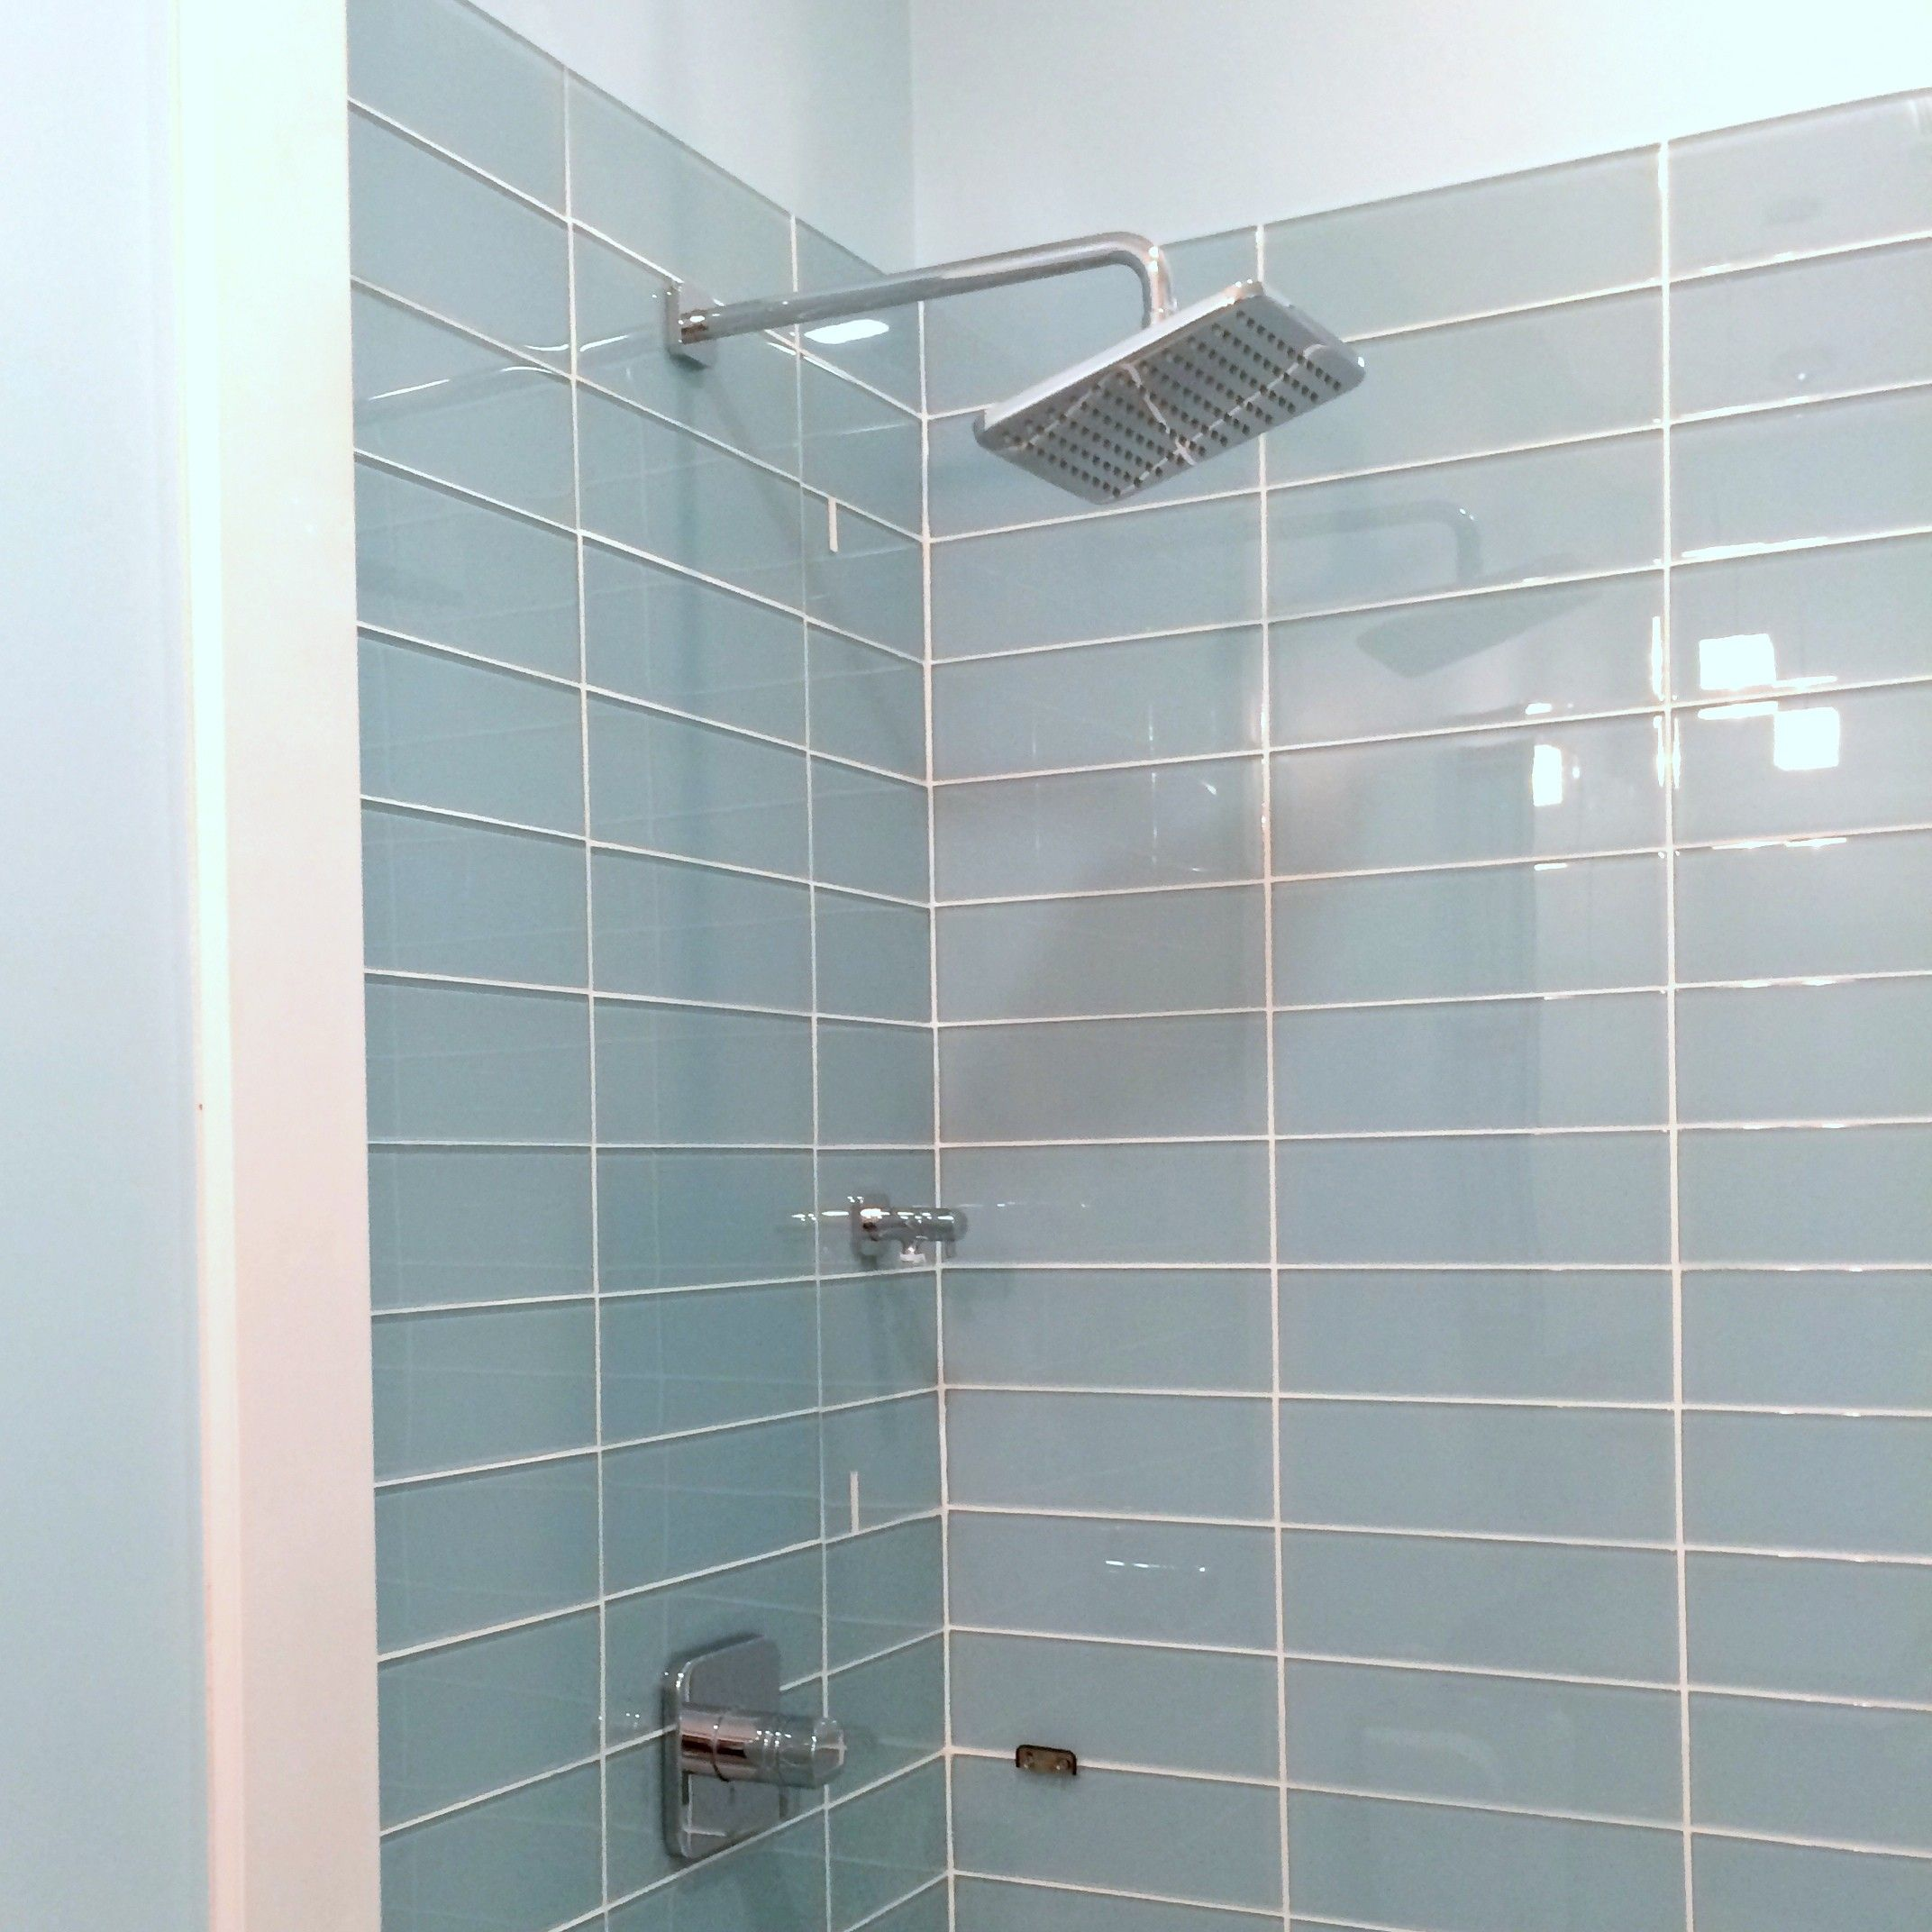 Lush Glass Subway Tile Vapor 4x12 In 2019 Bathrooms